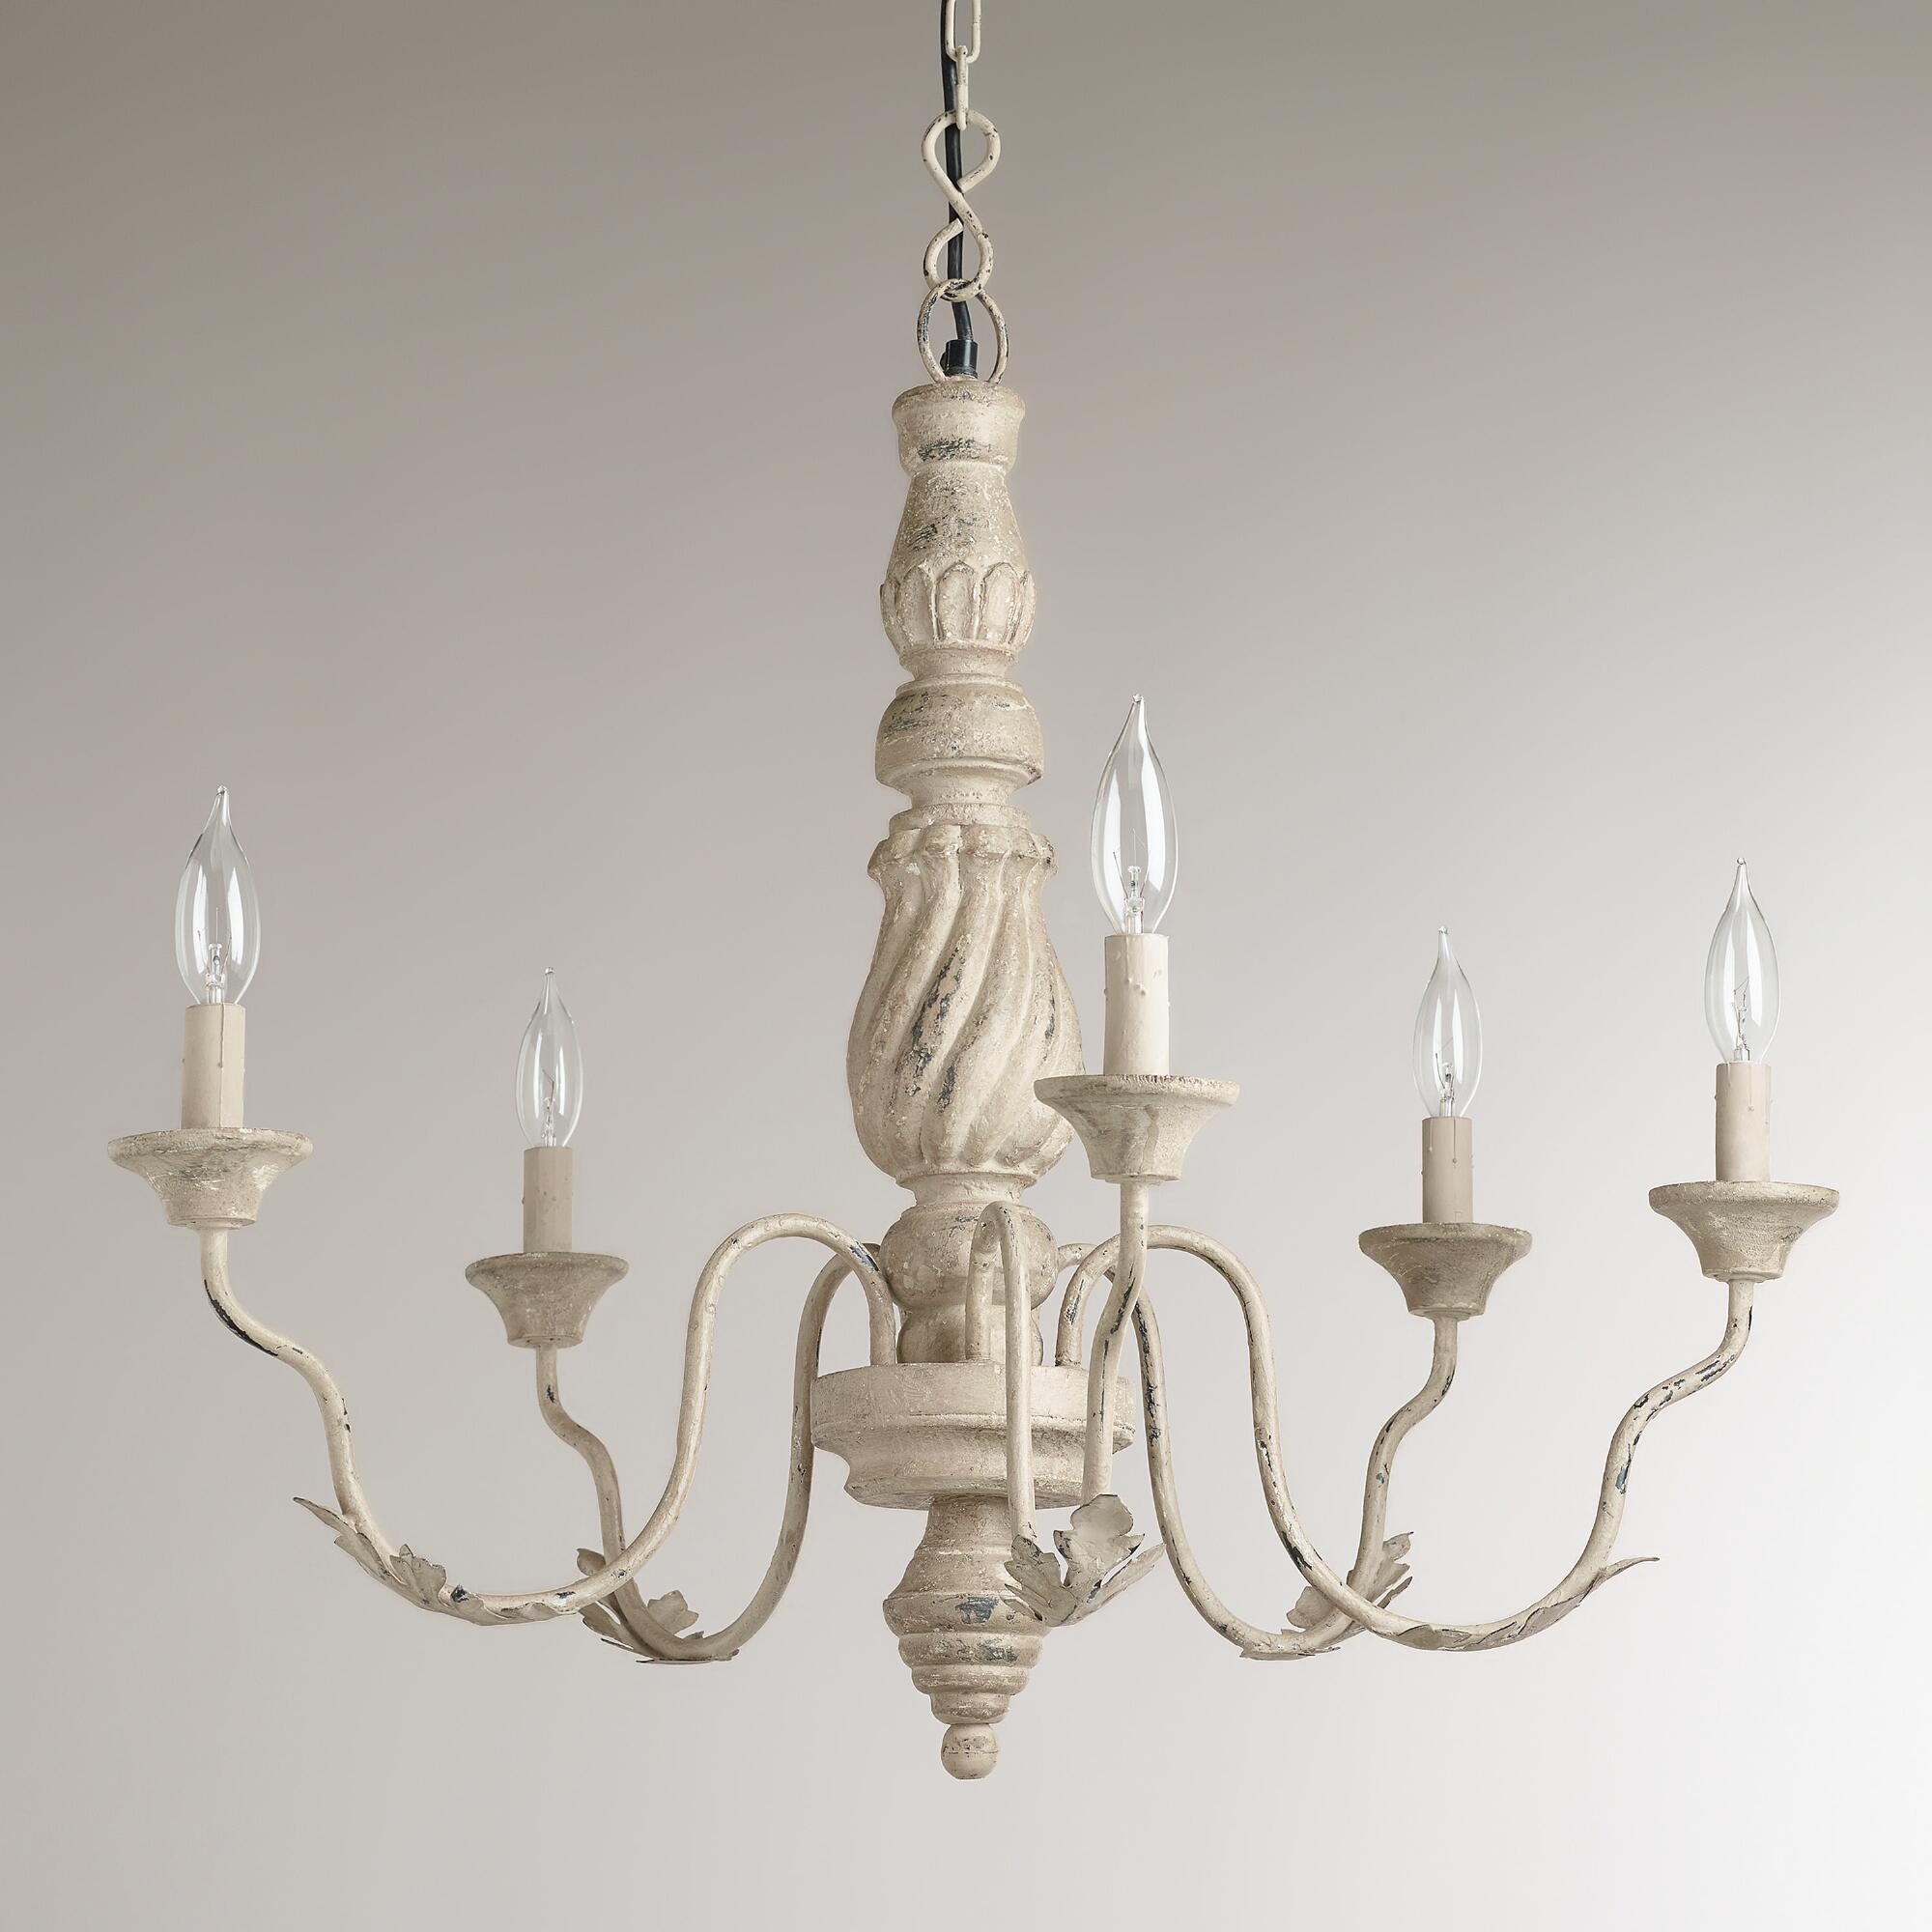 direct dark grey nori lighting murray driftwood dwg weathered zinc light shipped chandelier feiss